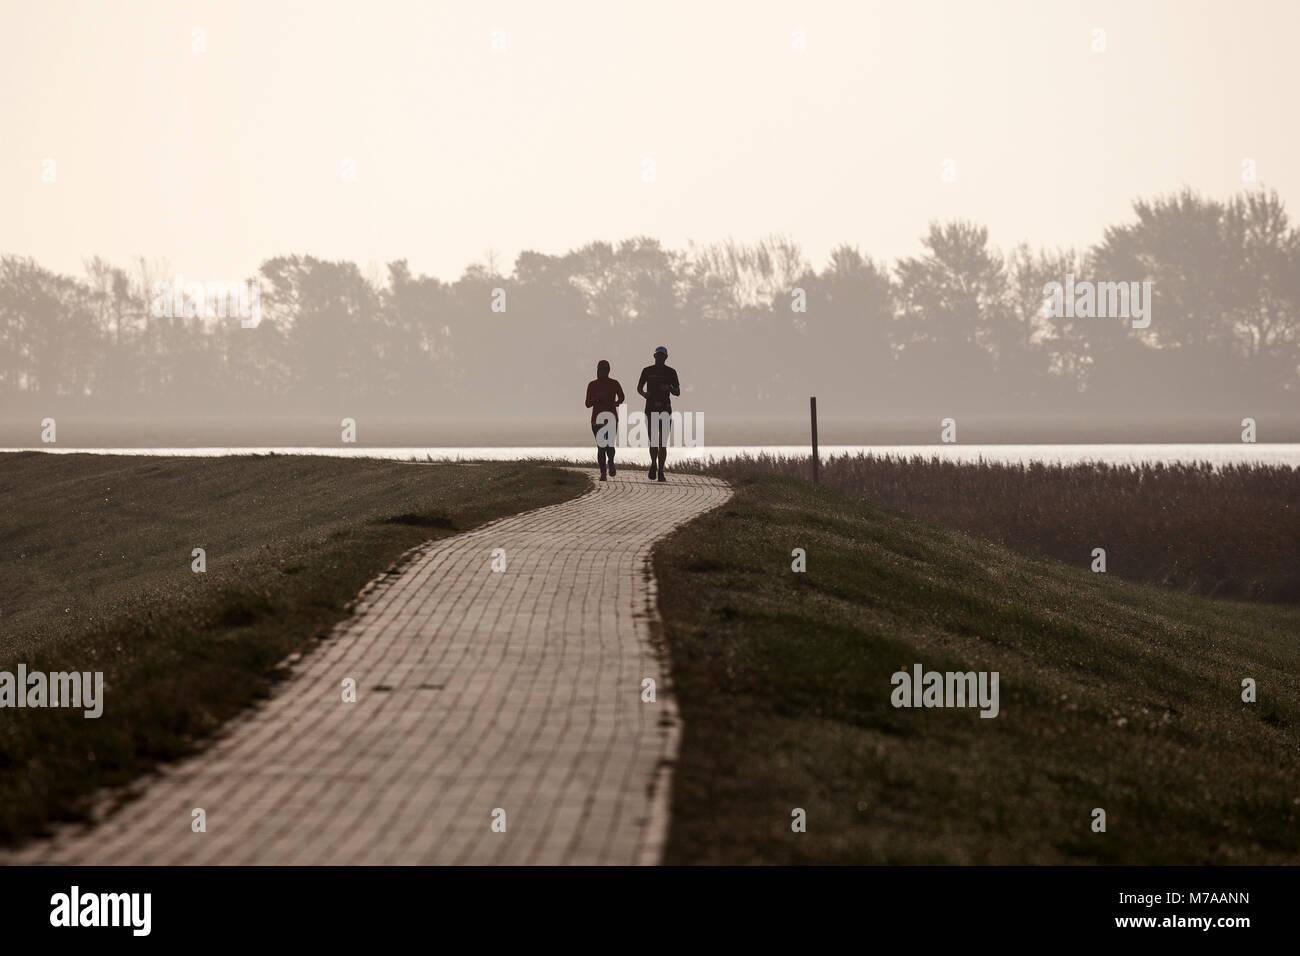 Two joggers on a dike, Fischland-Darß-Zingst, morning atmosphere, Western Pomerania Lagoon Area National Park - Stock Image